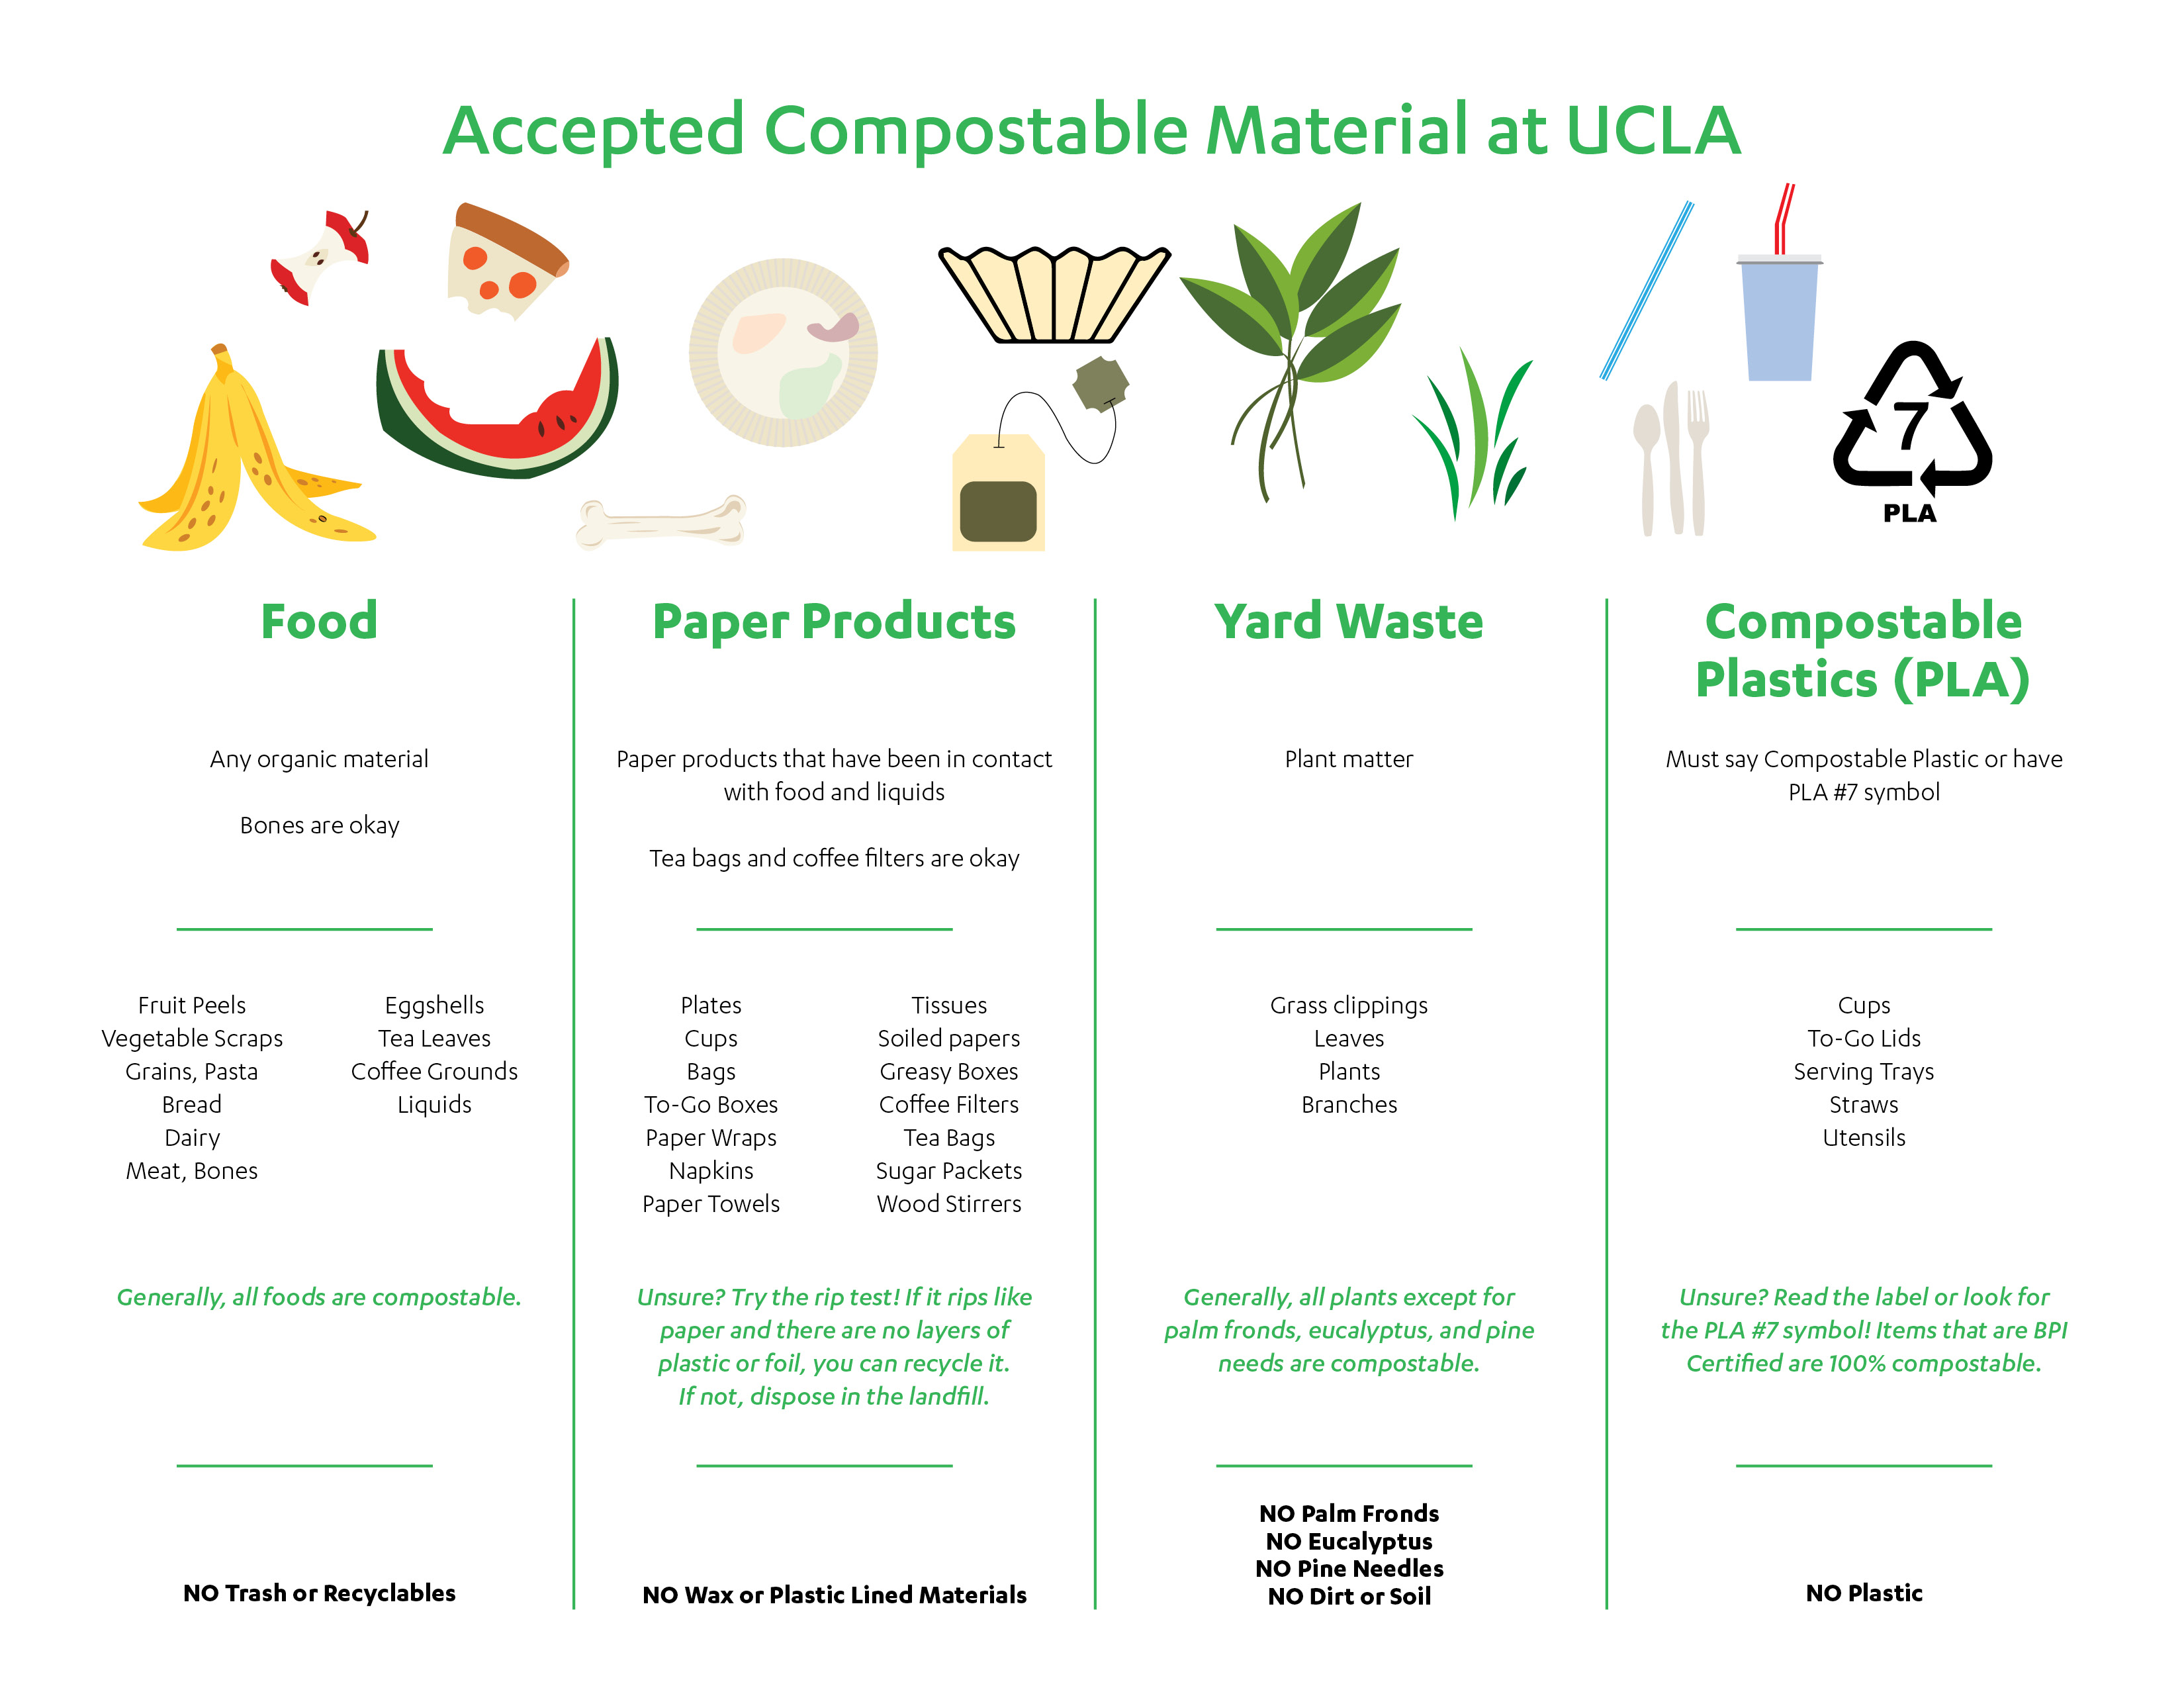 Accepted Compostable Materials